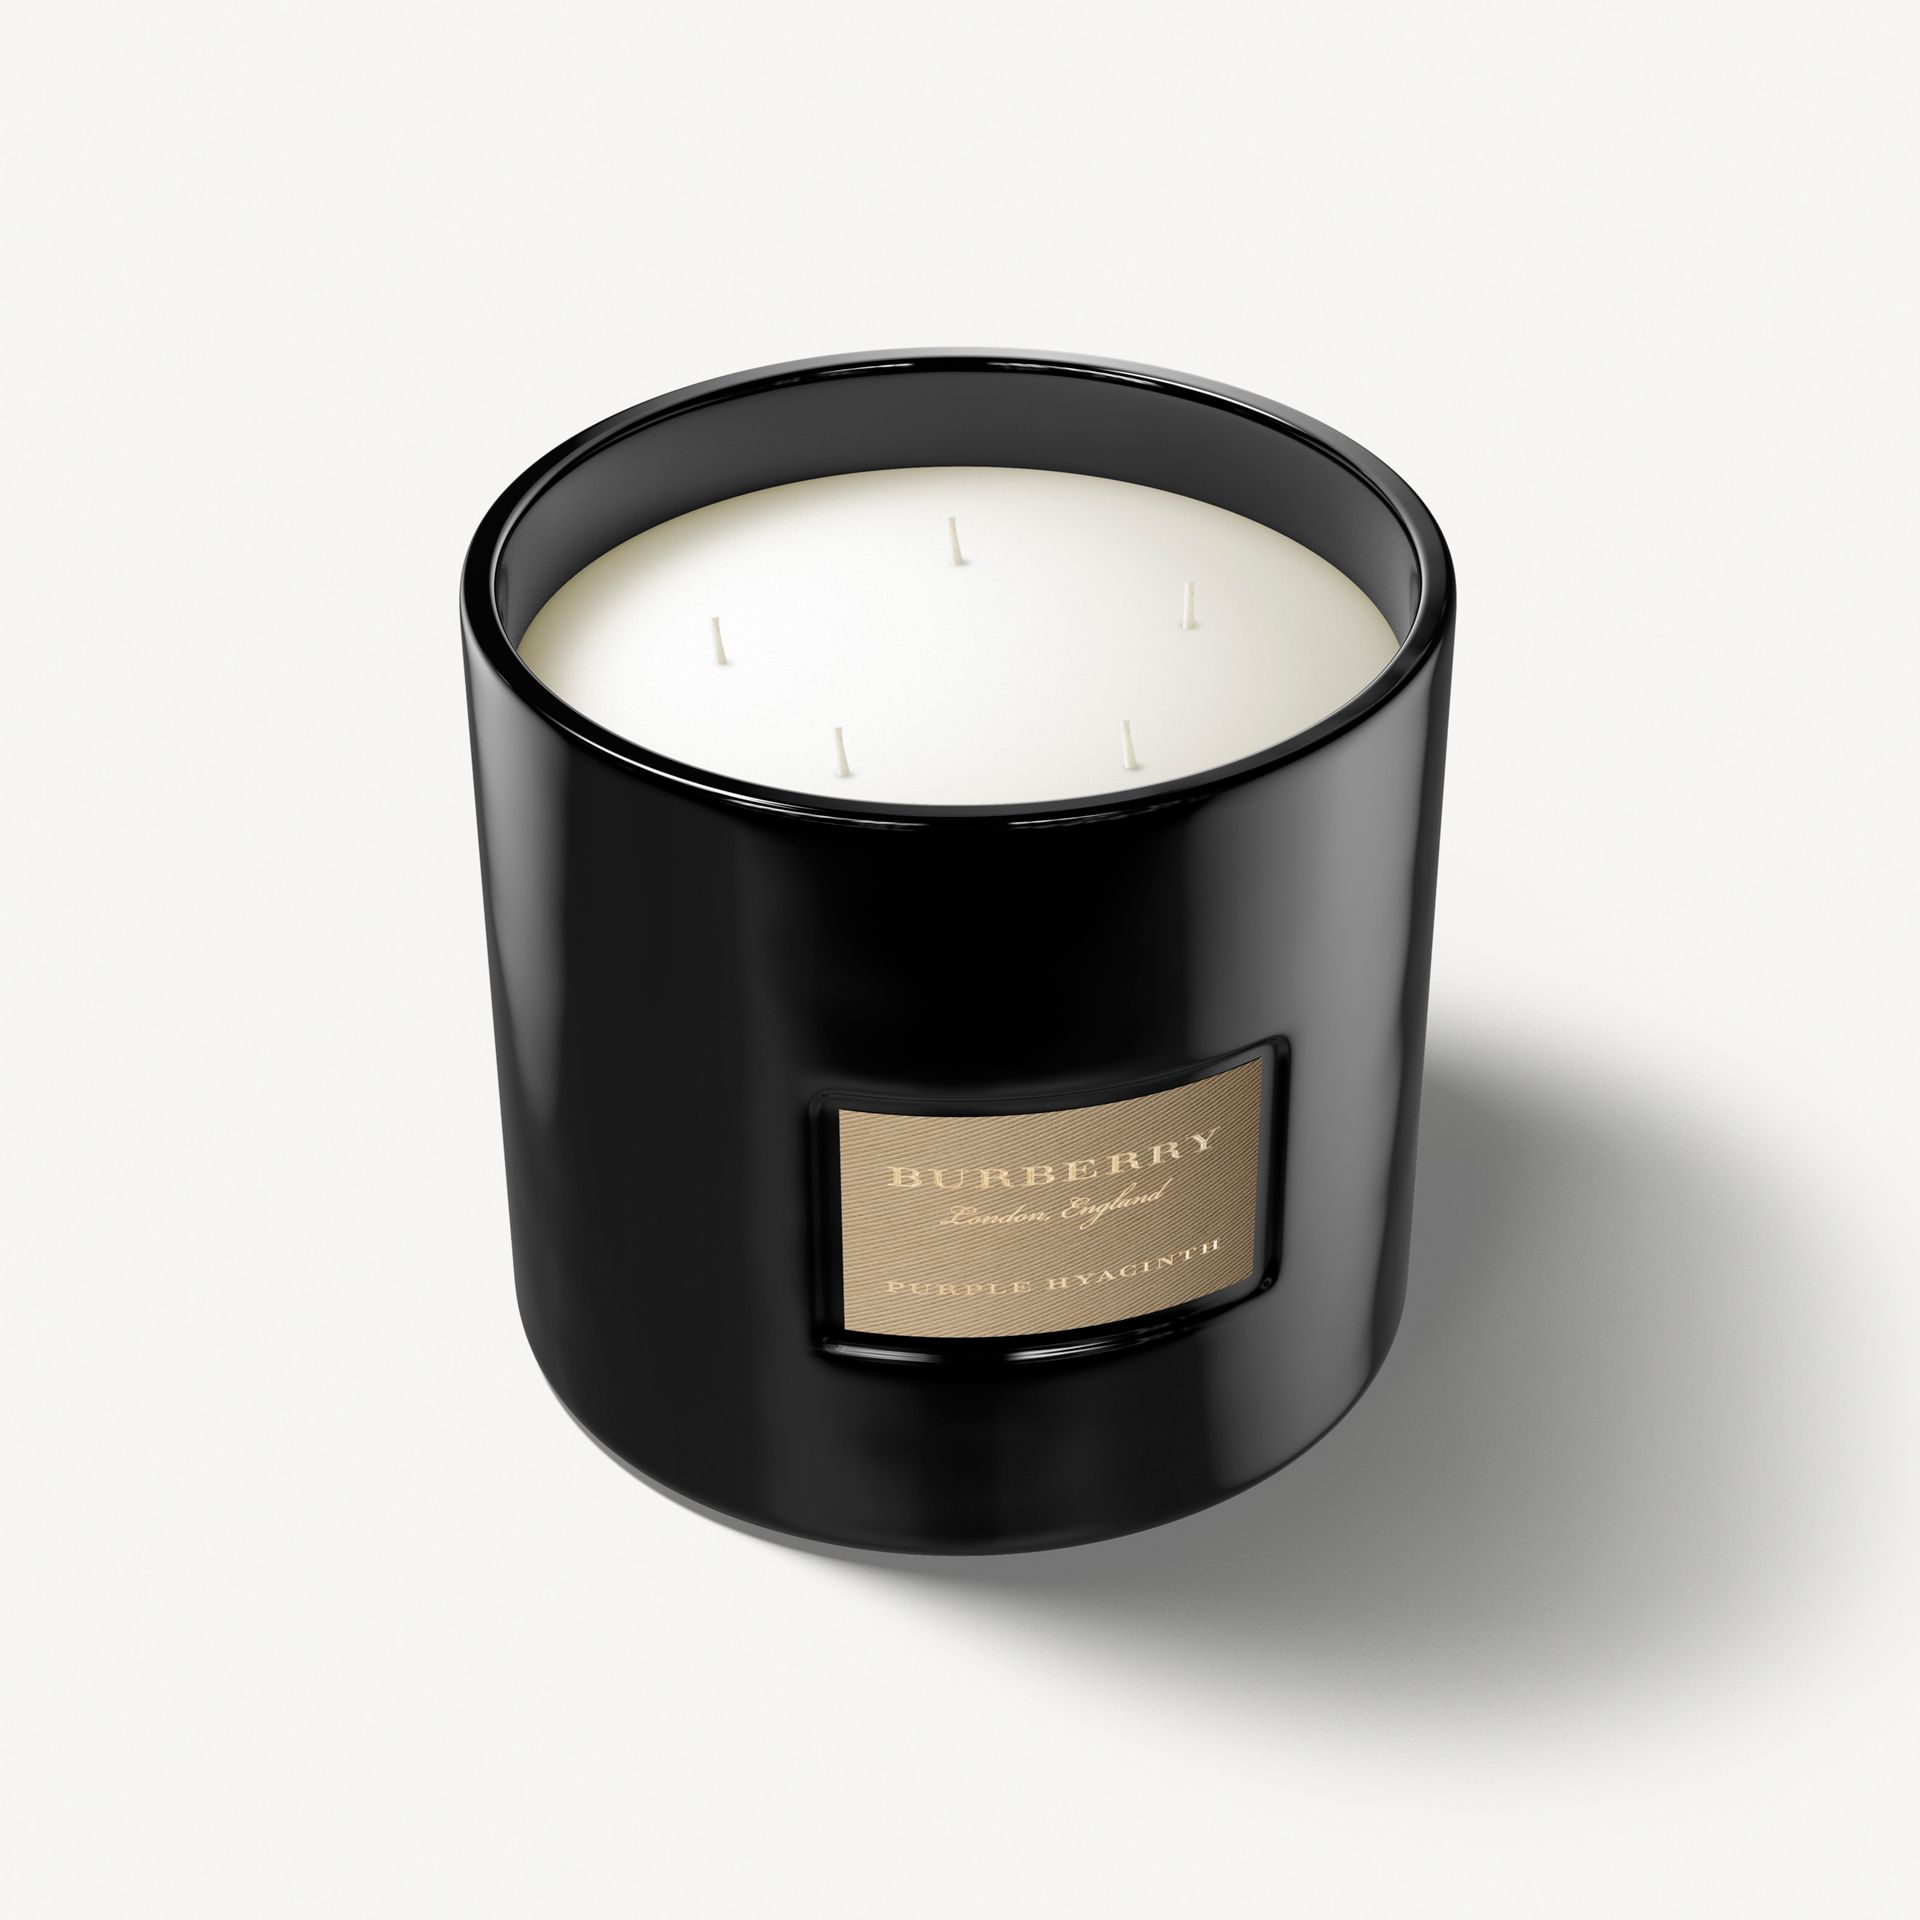 Purple Hyacinth Scented Candle – 2 kg | Burberry - Galerie-Bild 1